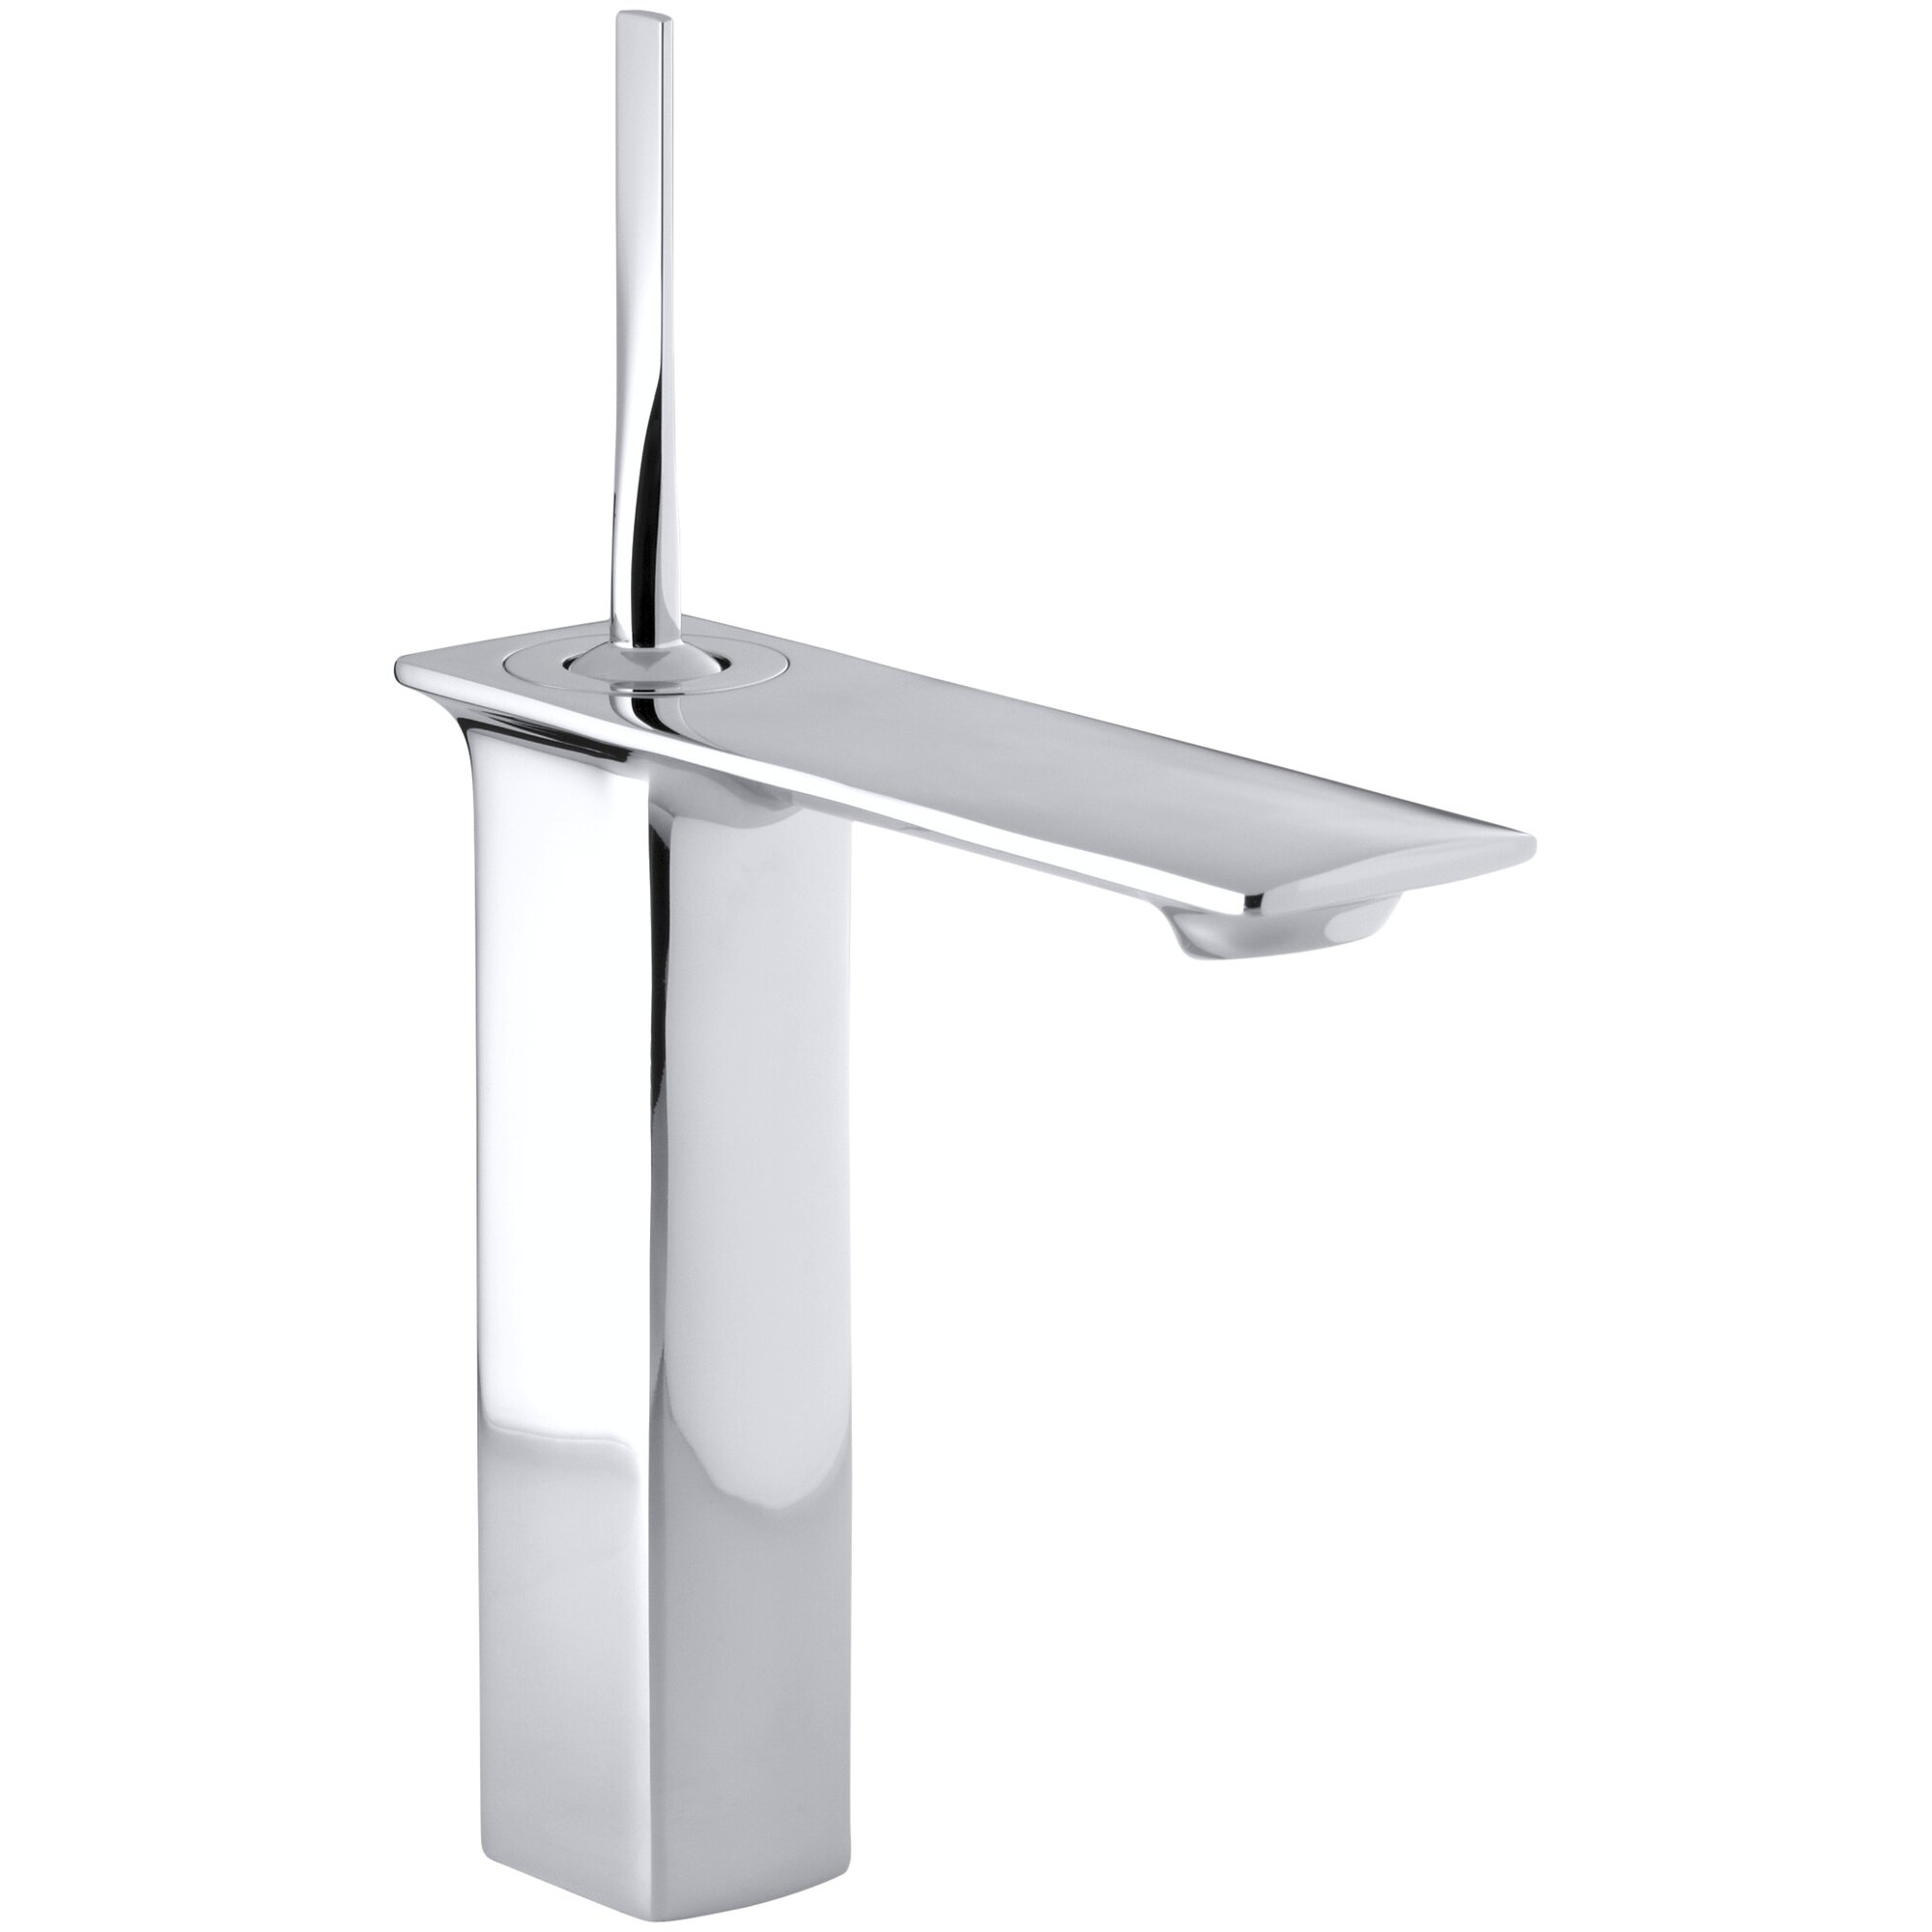 Stance Tall Single Hole Bathroom Sink Faucet